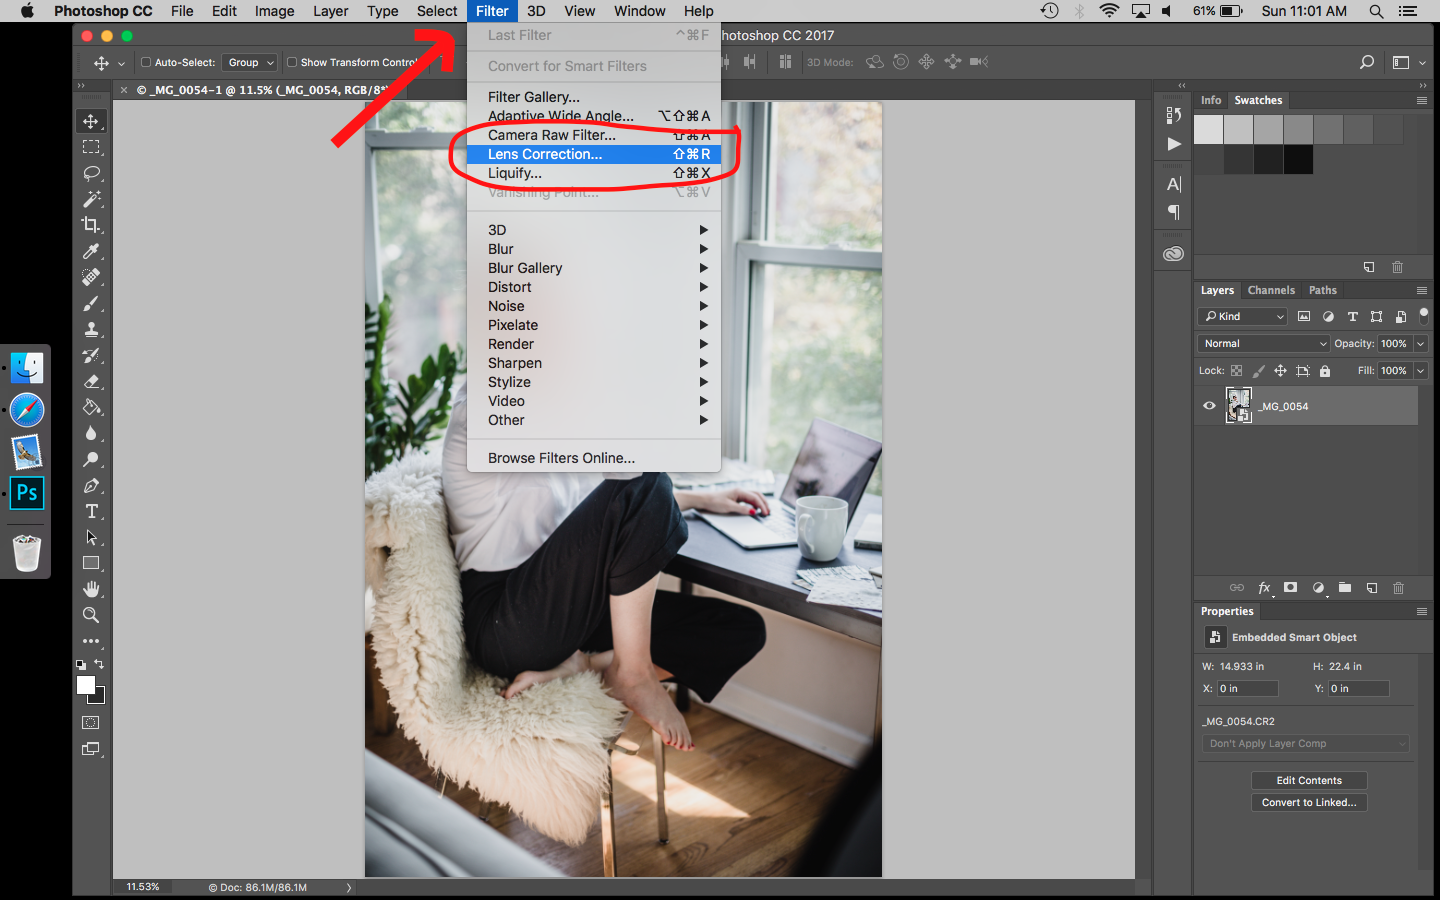 How to use lens corrections filters in Photoshop to fix chromatic aberration